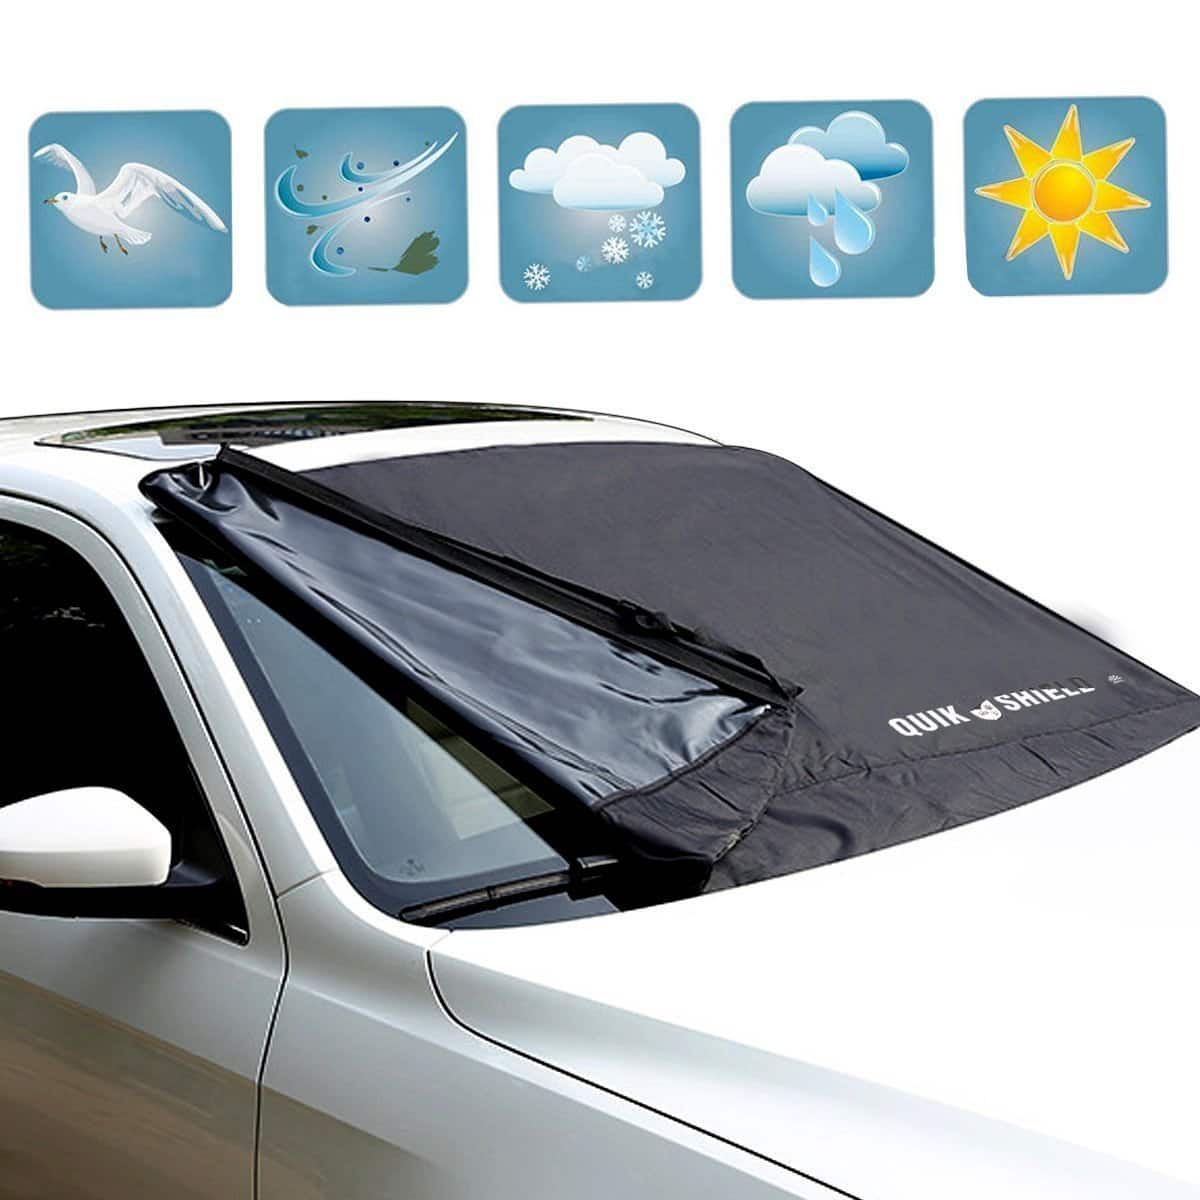 Windshield Snow Covers Oxford Cloth Windshield Sun Snow Cover $19.96 AC+ FS With Prime